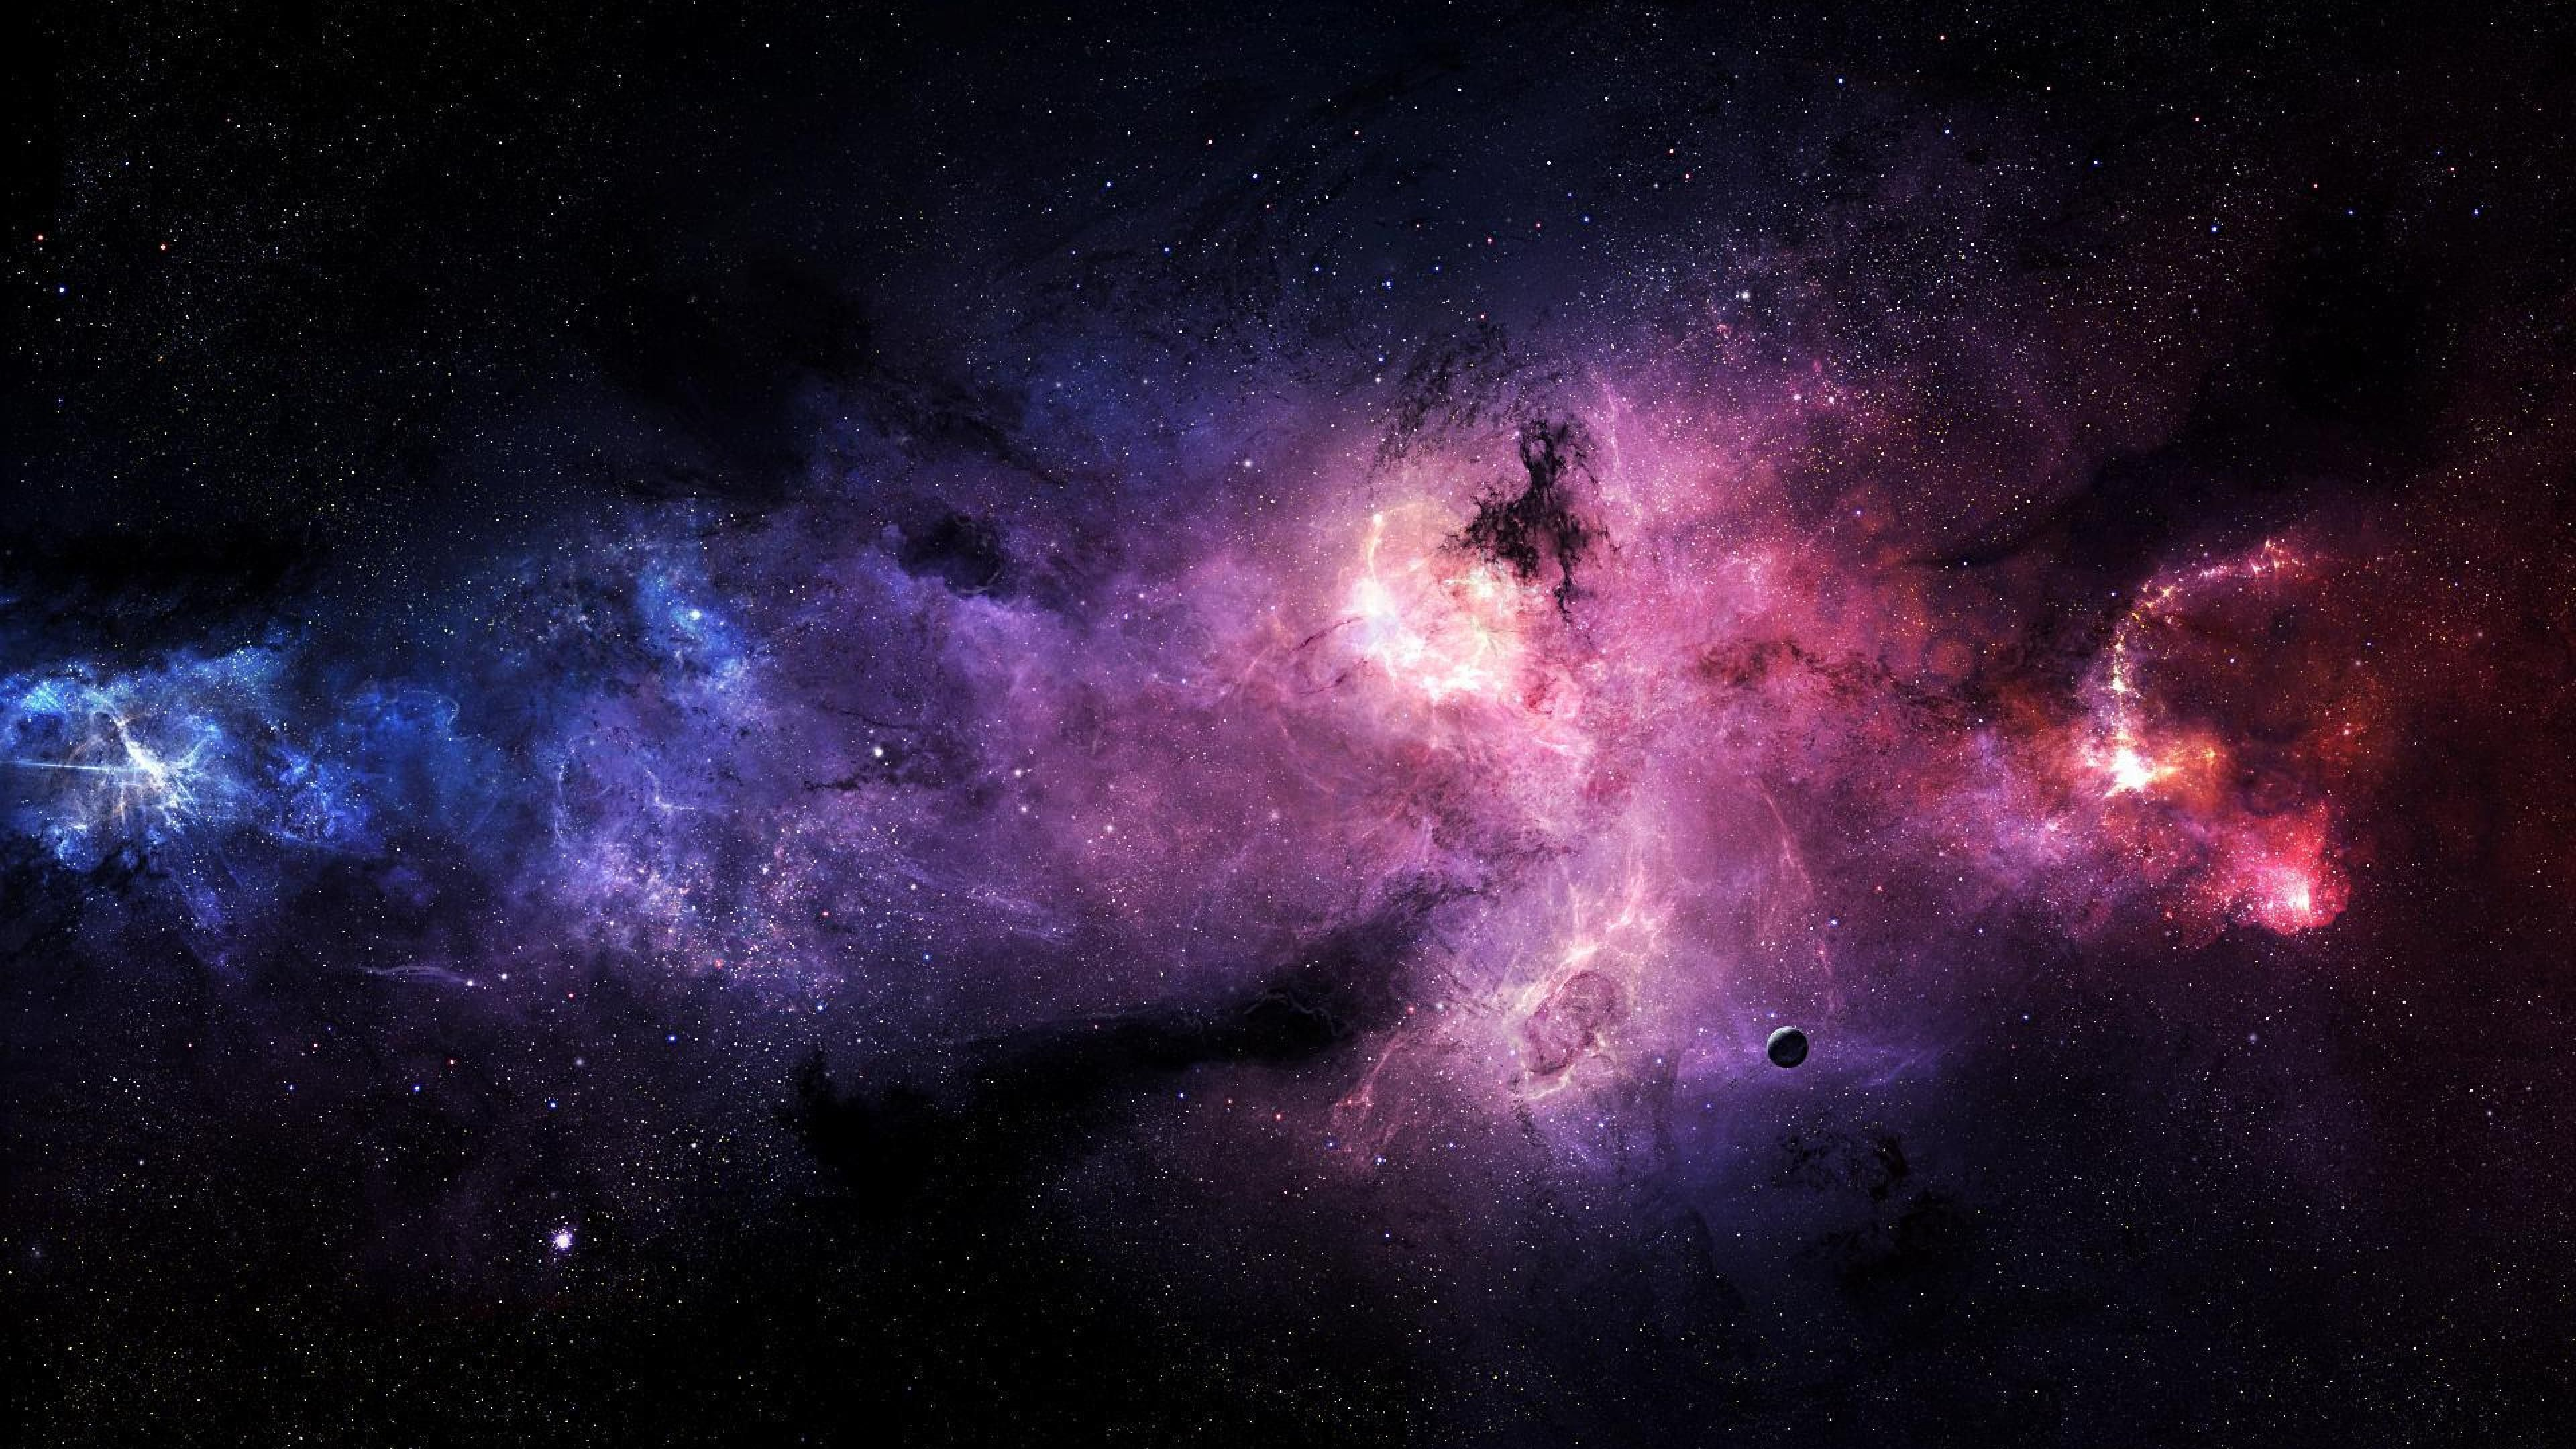 Space Pc Wallpapers Top Free Space Pc Backgrounds